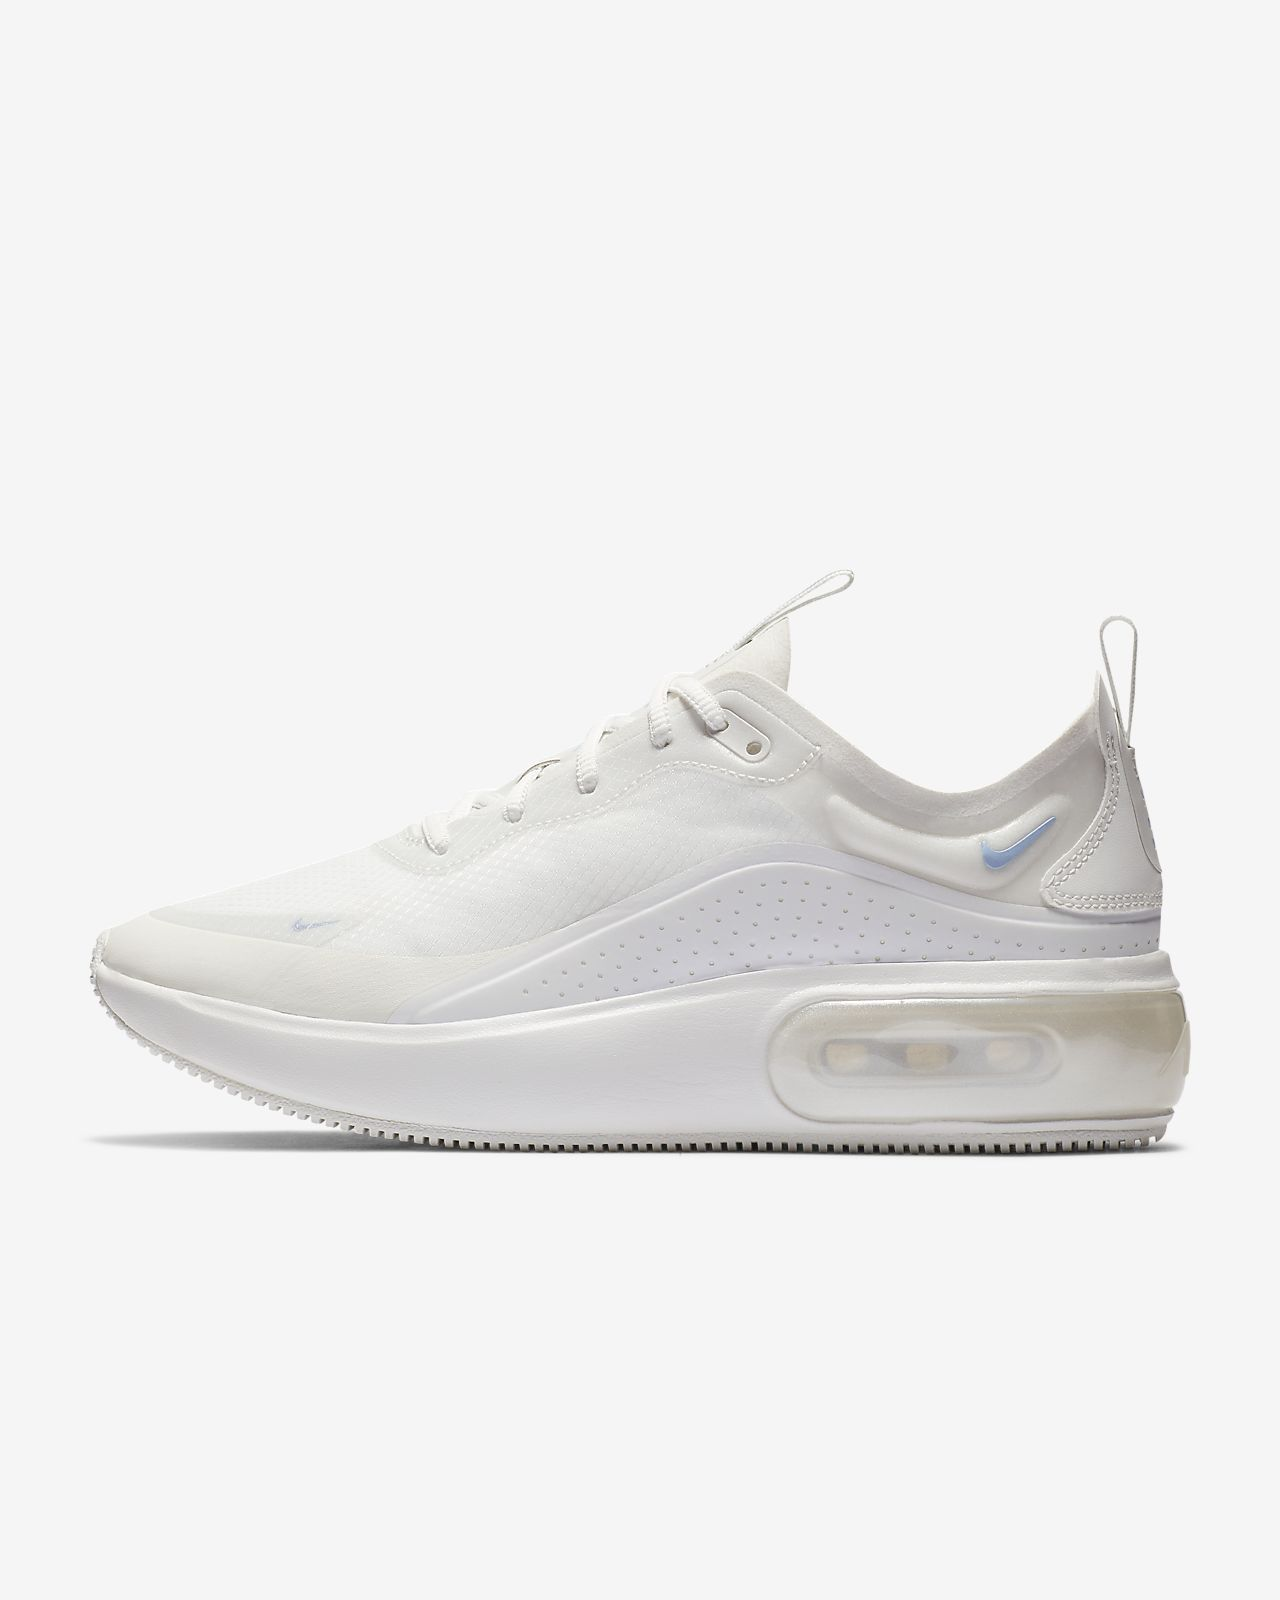 super popular e4ad3 34854 Shoe. Nike Air Max Dia SE